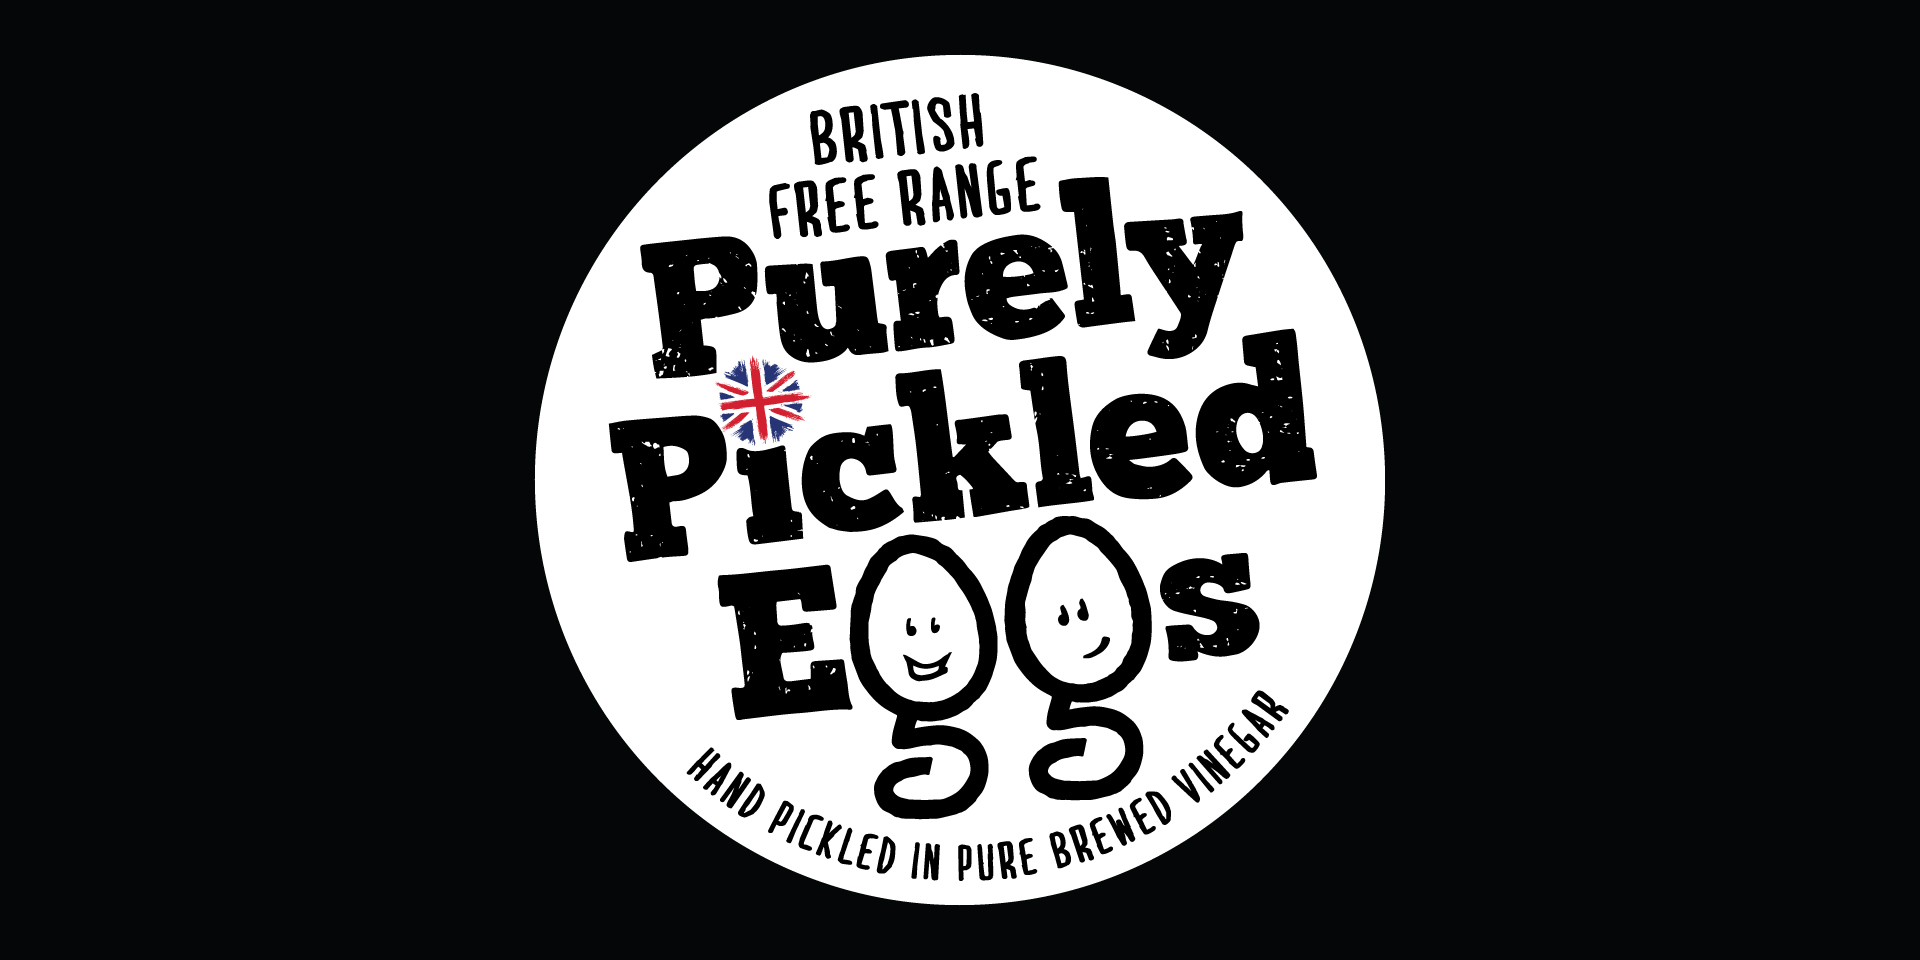 B009-2066-Purely-Pickled-Eggs-wide1.jpg